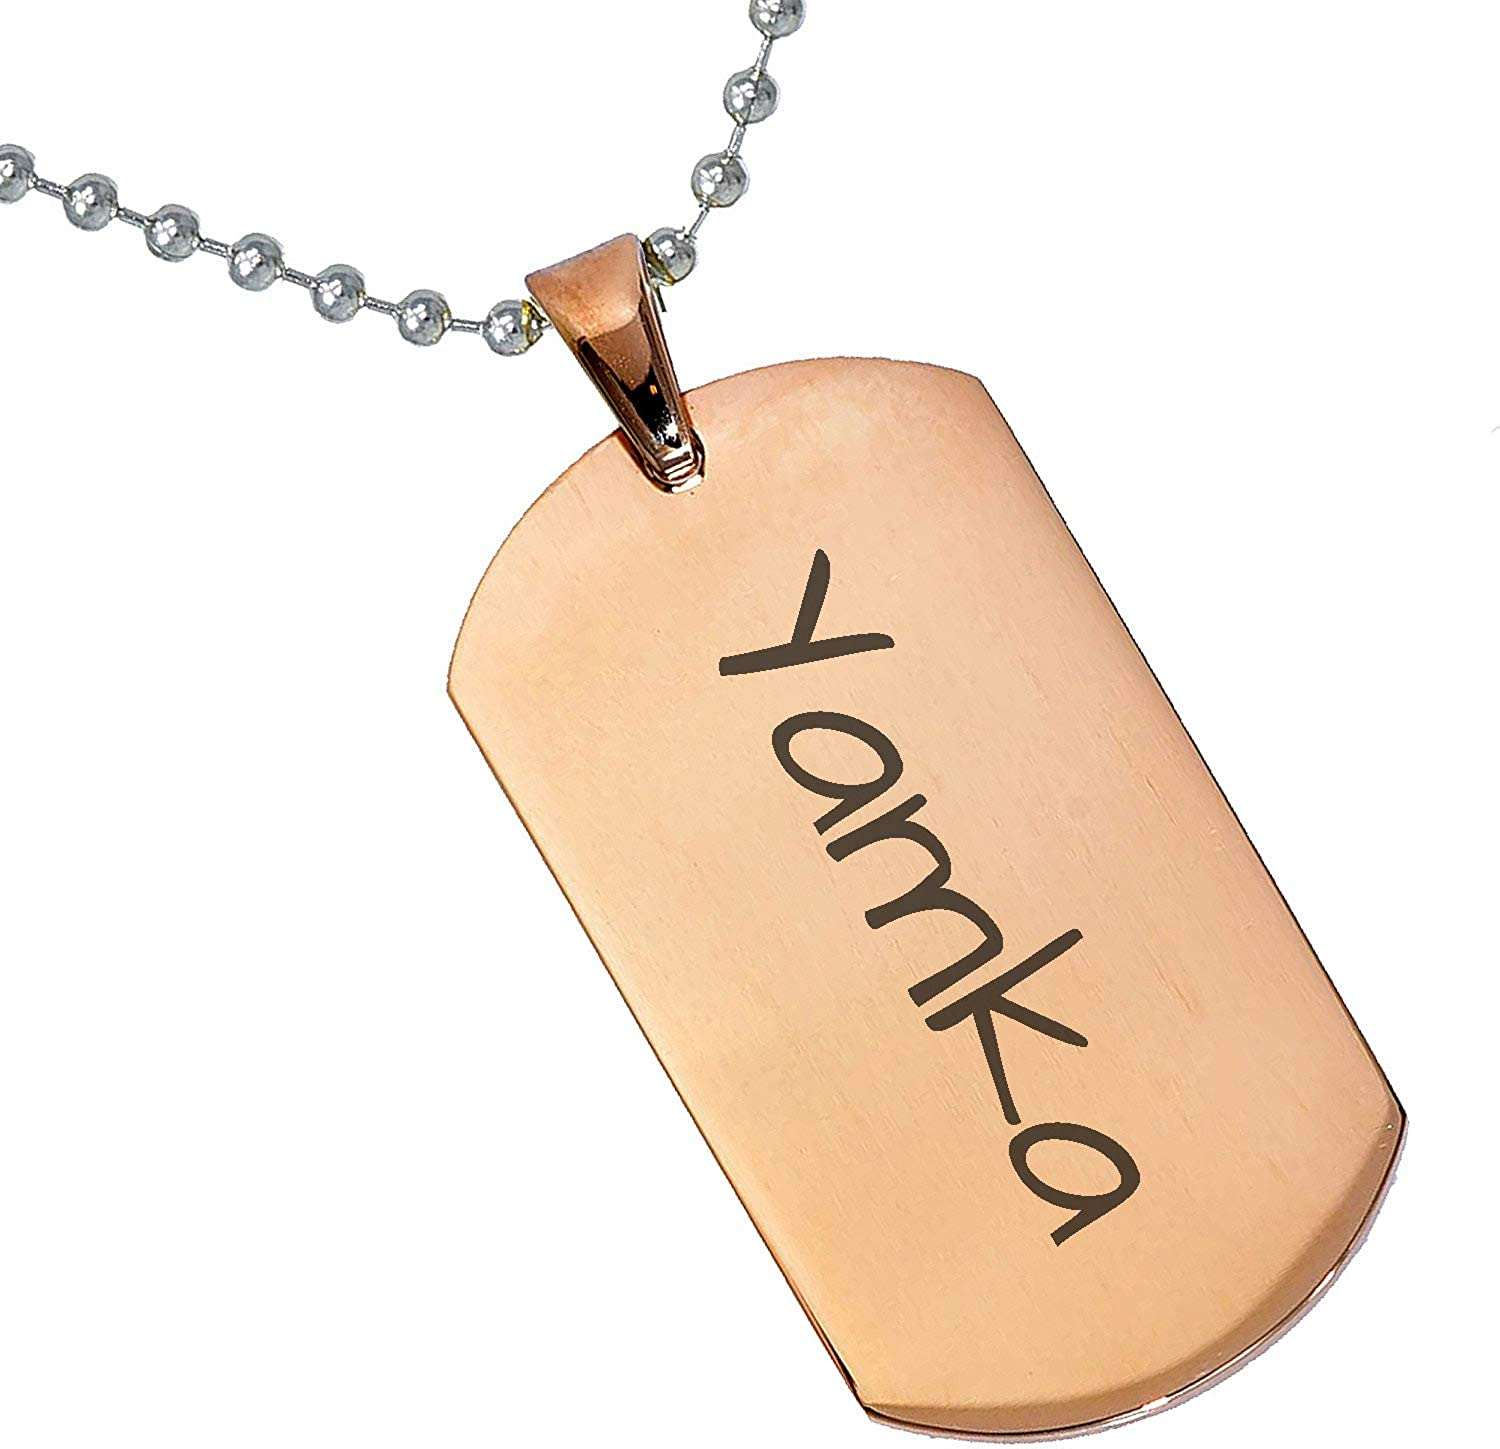 Stainless Steel Silver Gold Black Rose Gold Color Baby Name Yamka Engraved Personalized Gifts For Son Daughter Boyfriend Girlfriend Initial Customizable Pendant Necklace Dog Tags 24 Ball Chain